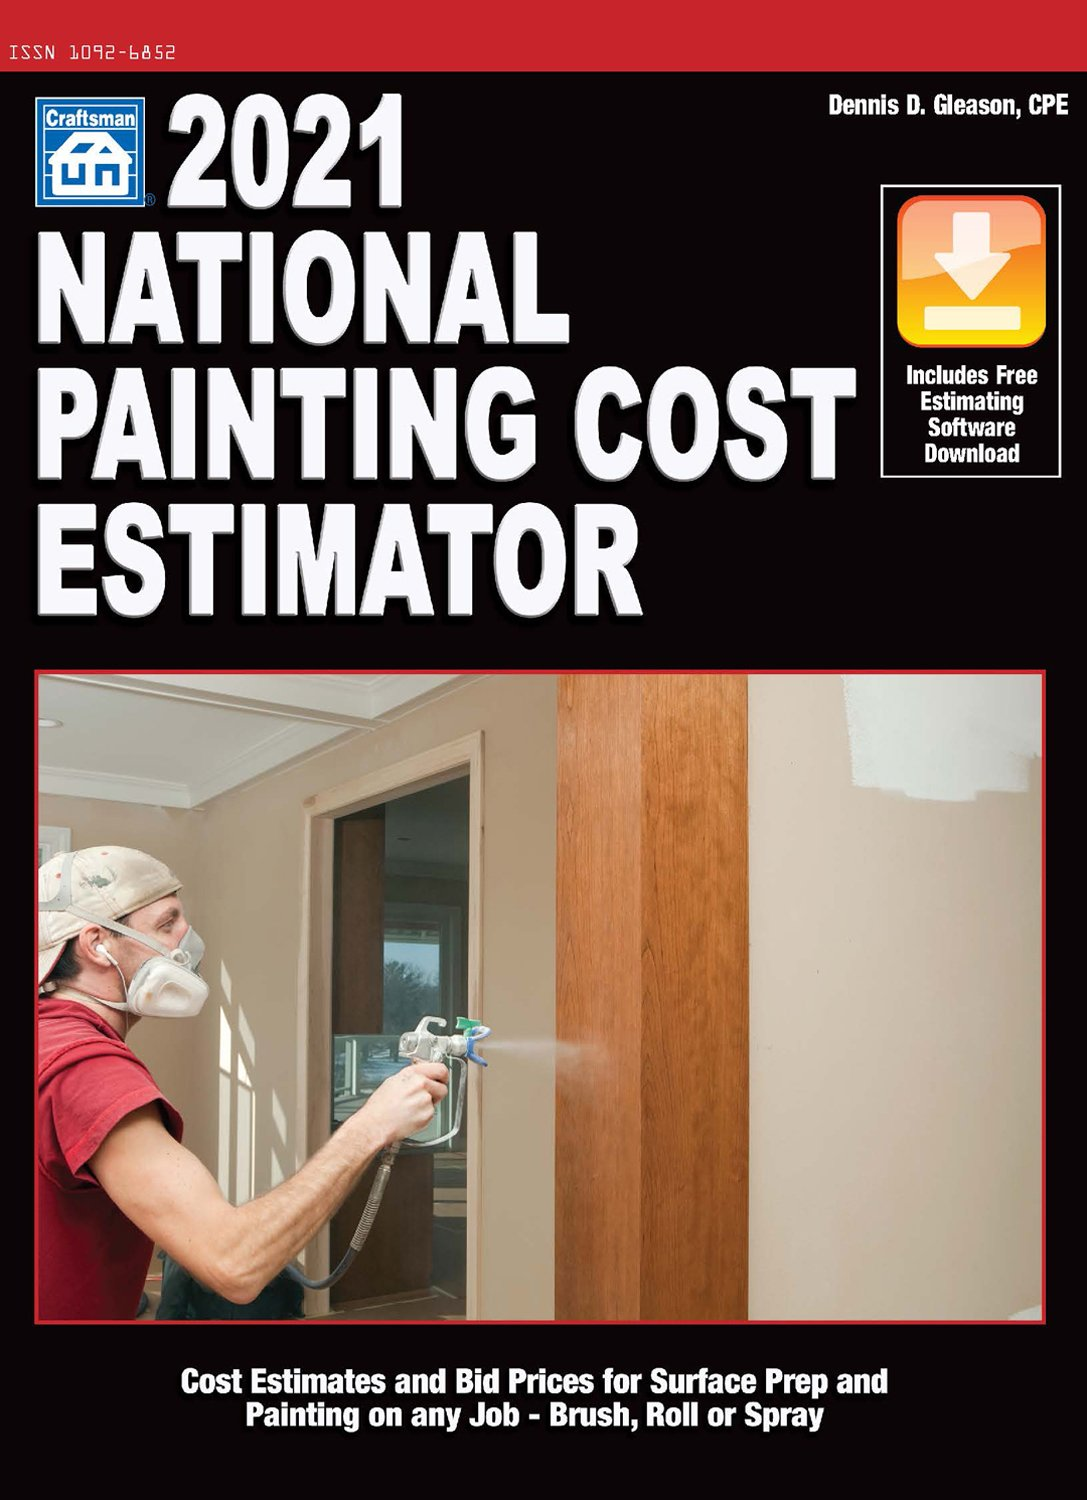 2021 National Painting Cost Estimator